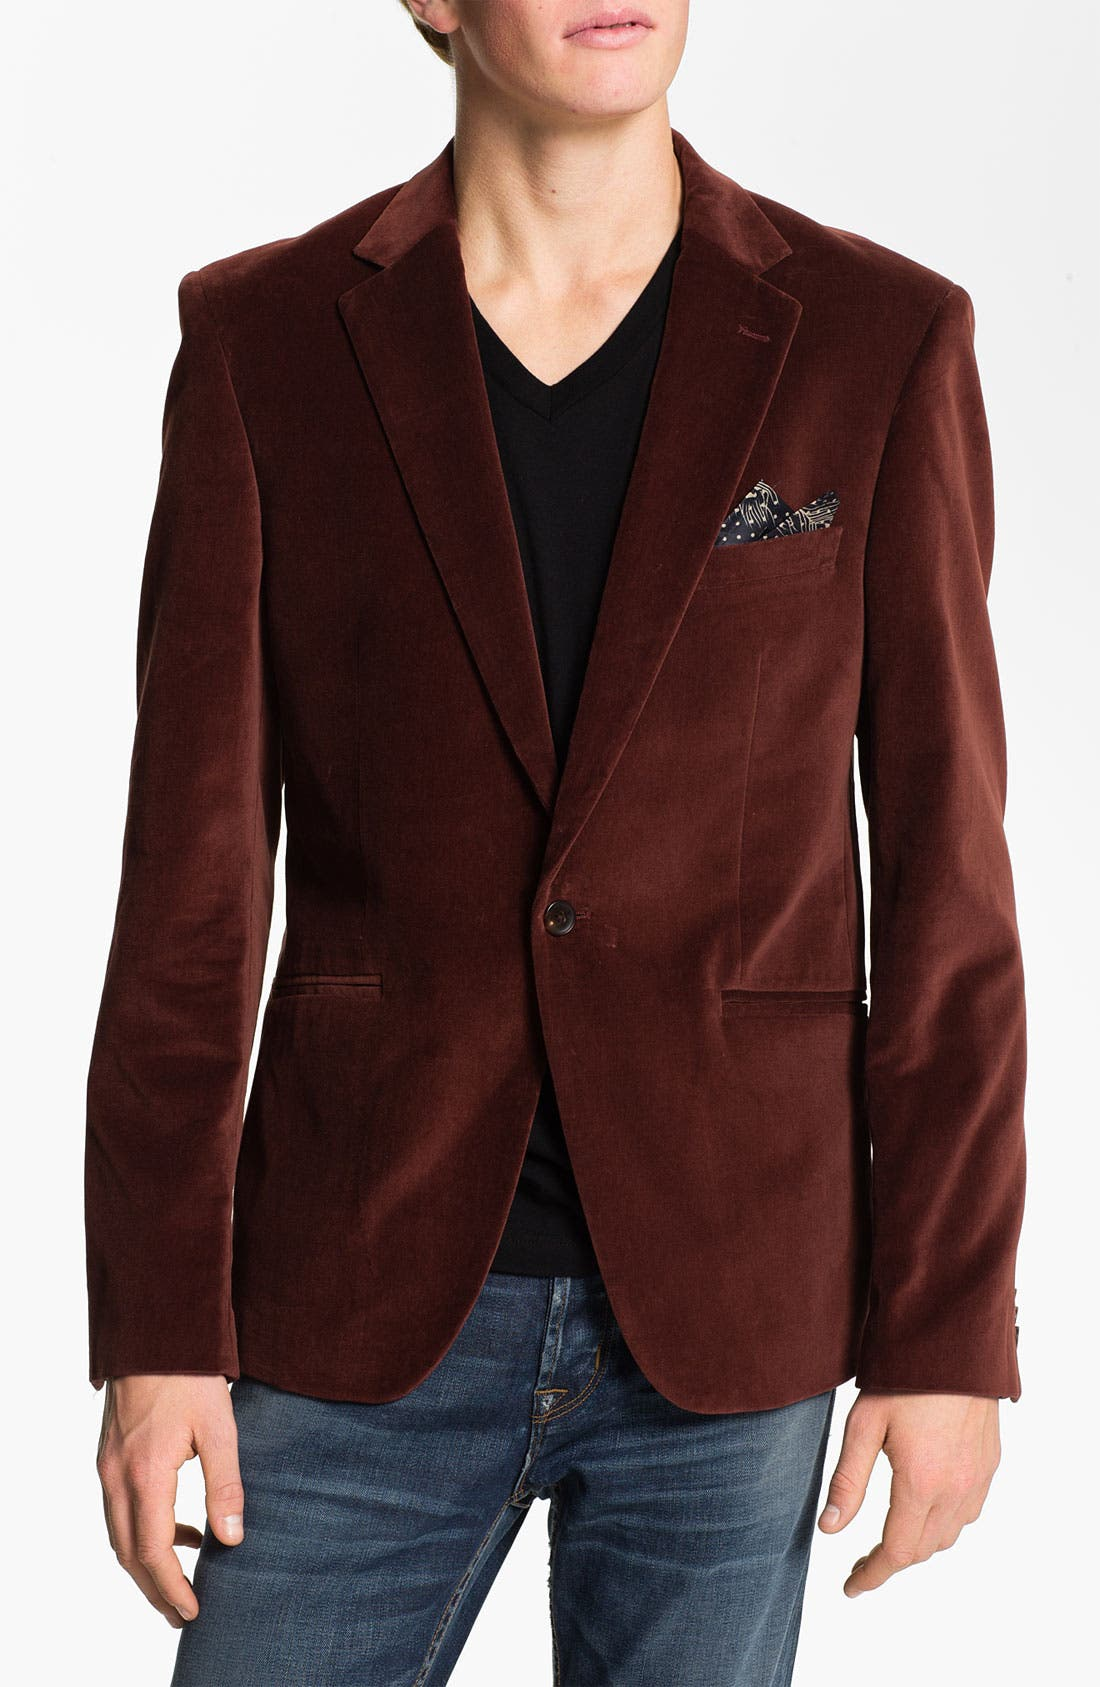 Alternate Image 1 Selected - Scotch & Soda Trim Fit Velvet Blazer